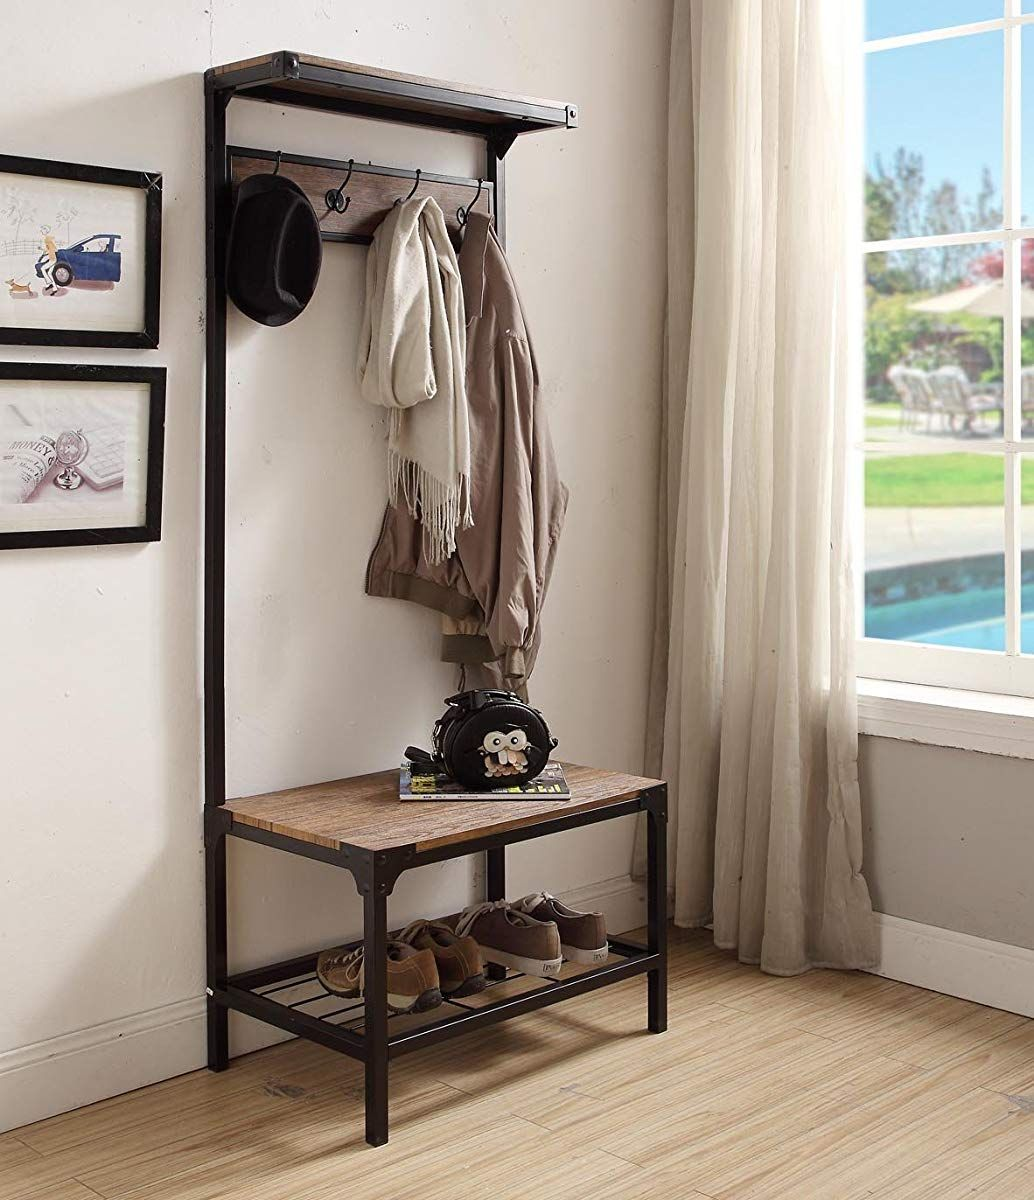 Build Your Own Coat Rack: Industrial Look Entryway Shoe Bench With Coat Rack